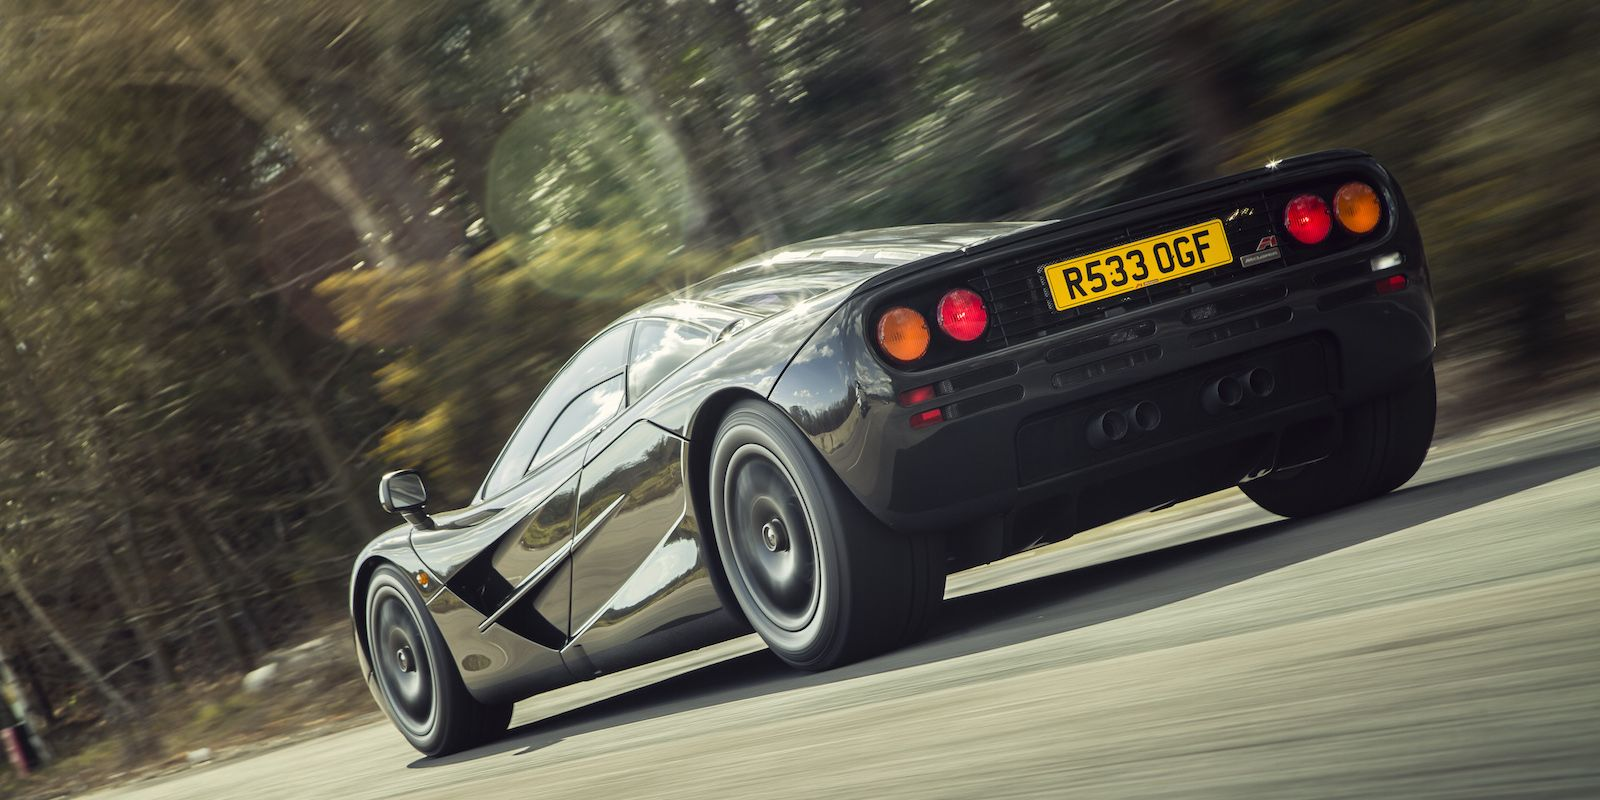 "<p>When we <a href=""http://www.roadandtrack.com/new-cars/first-drives/reviews/a5339/performance-tests-first-drives-flashback-1994-mclaren-f1/"" target=""_blank"">first reviewed the F1</a> in November 1994 we said, ""It can outperform every other road car by a large margin. But there is much more to it. The McLaren F1 materializes the dream of a single man.  ""</p>"